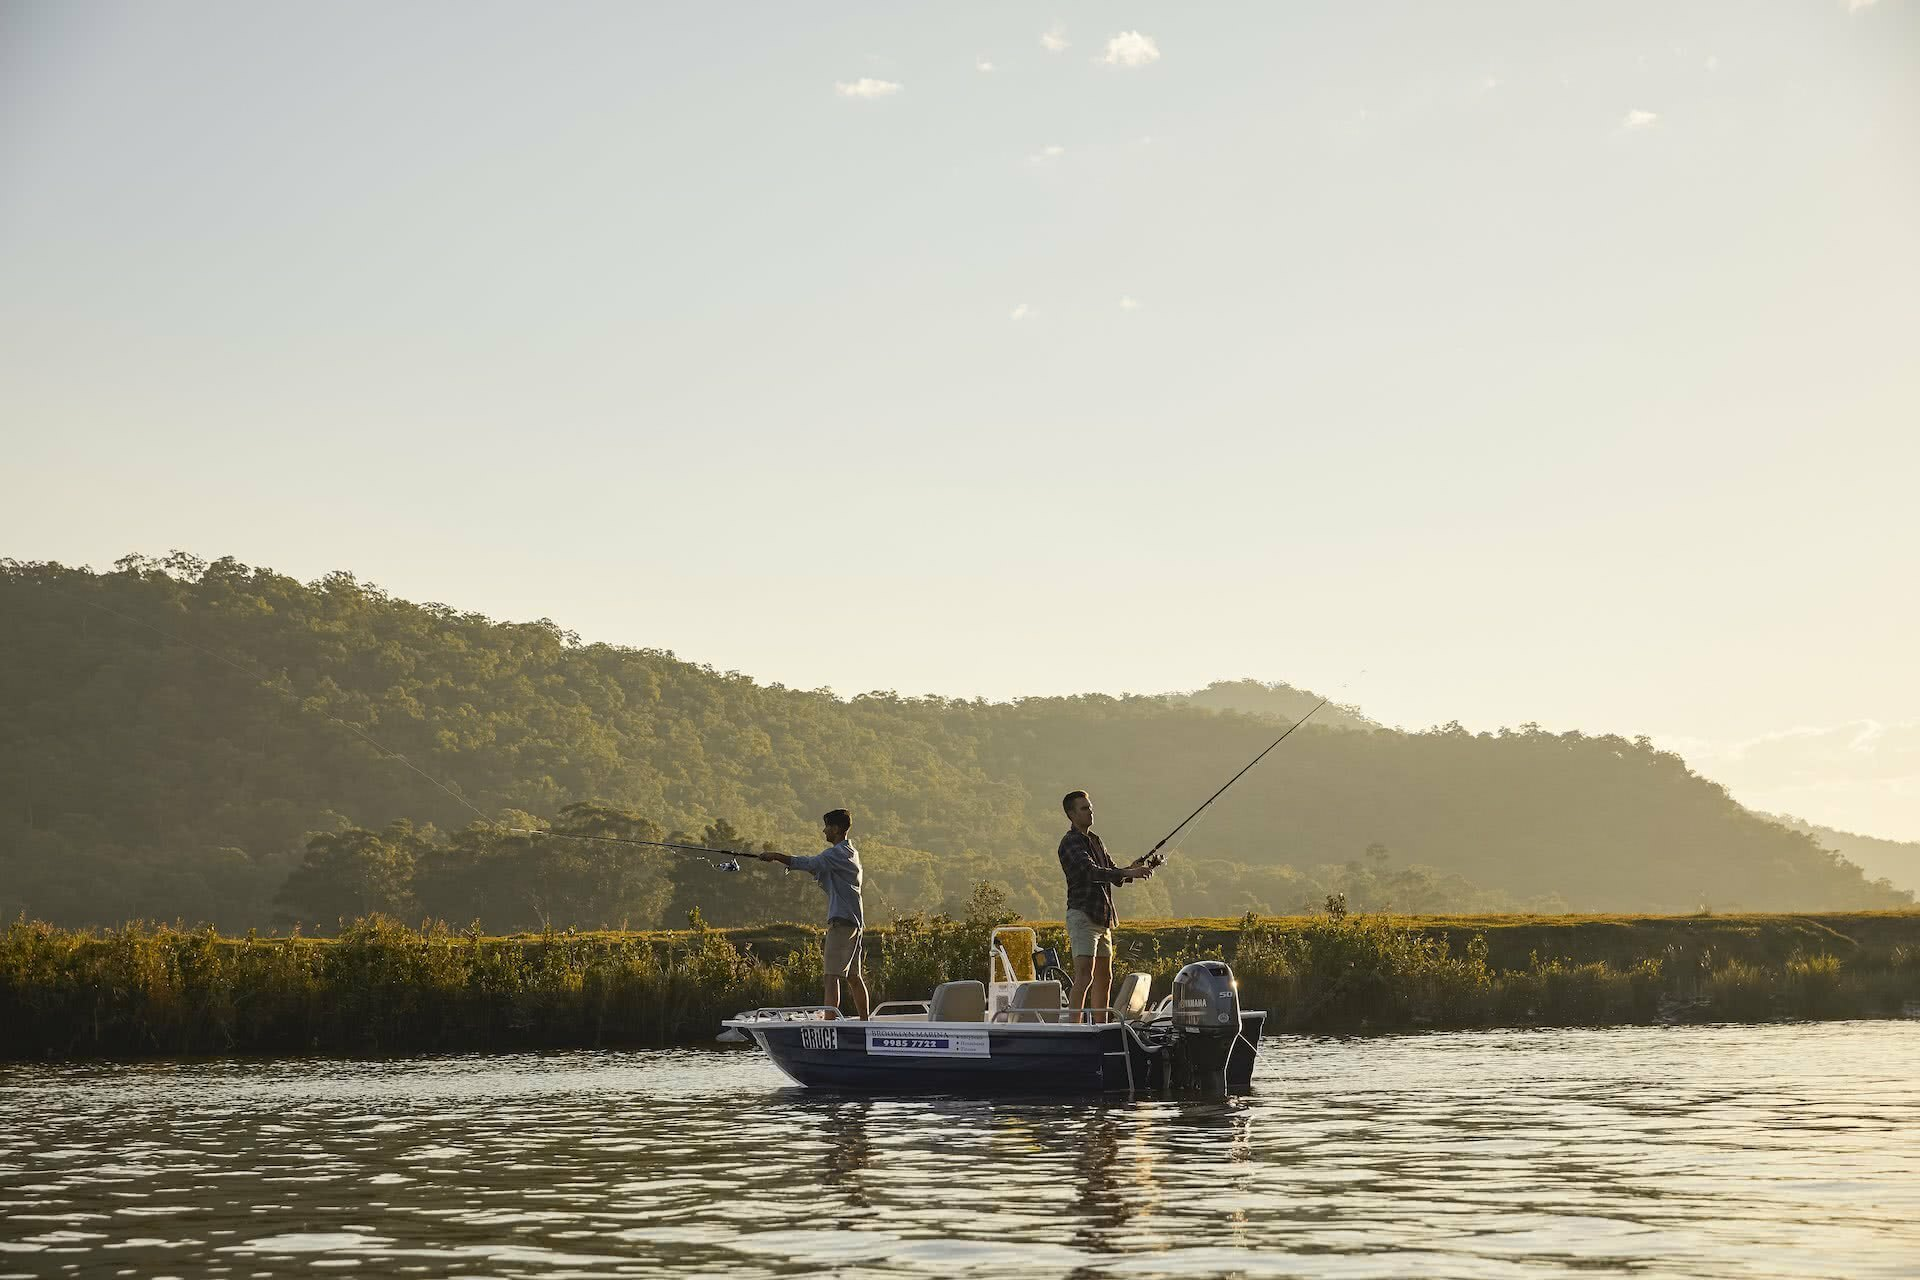 Best Fishing Spots In Sydney, photo thanks to DNSW, men, fishing, boat, Hawkesbury River, sunset, Wisemans Ferry, friends